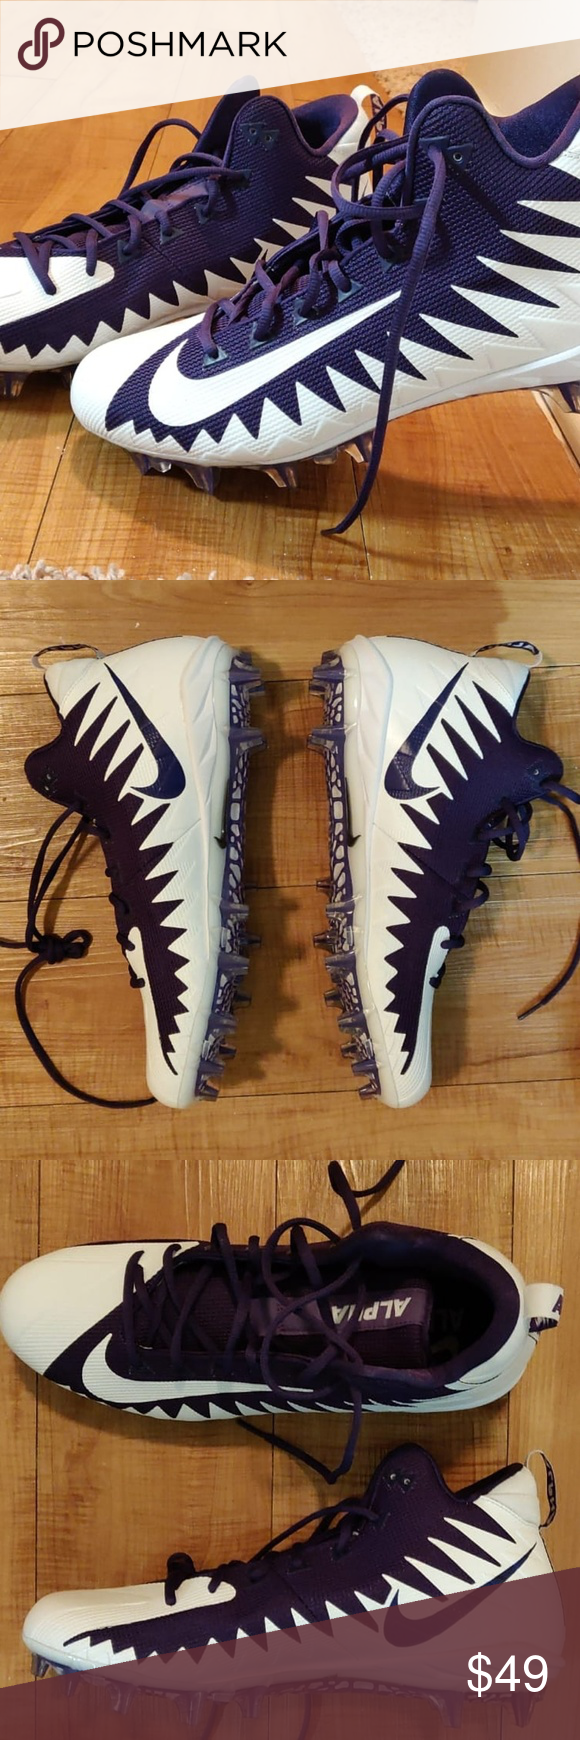 cd3d1a501319  NEW  Nike Alpha Menace Pro Mid Football Cleats Welcome to my store!  theflipwares